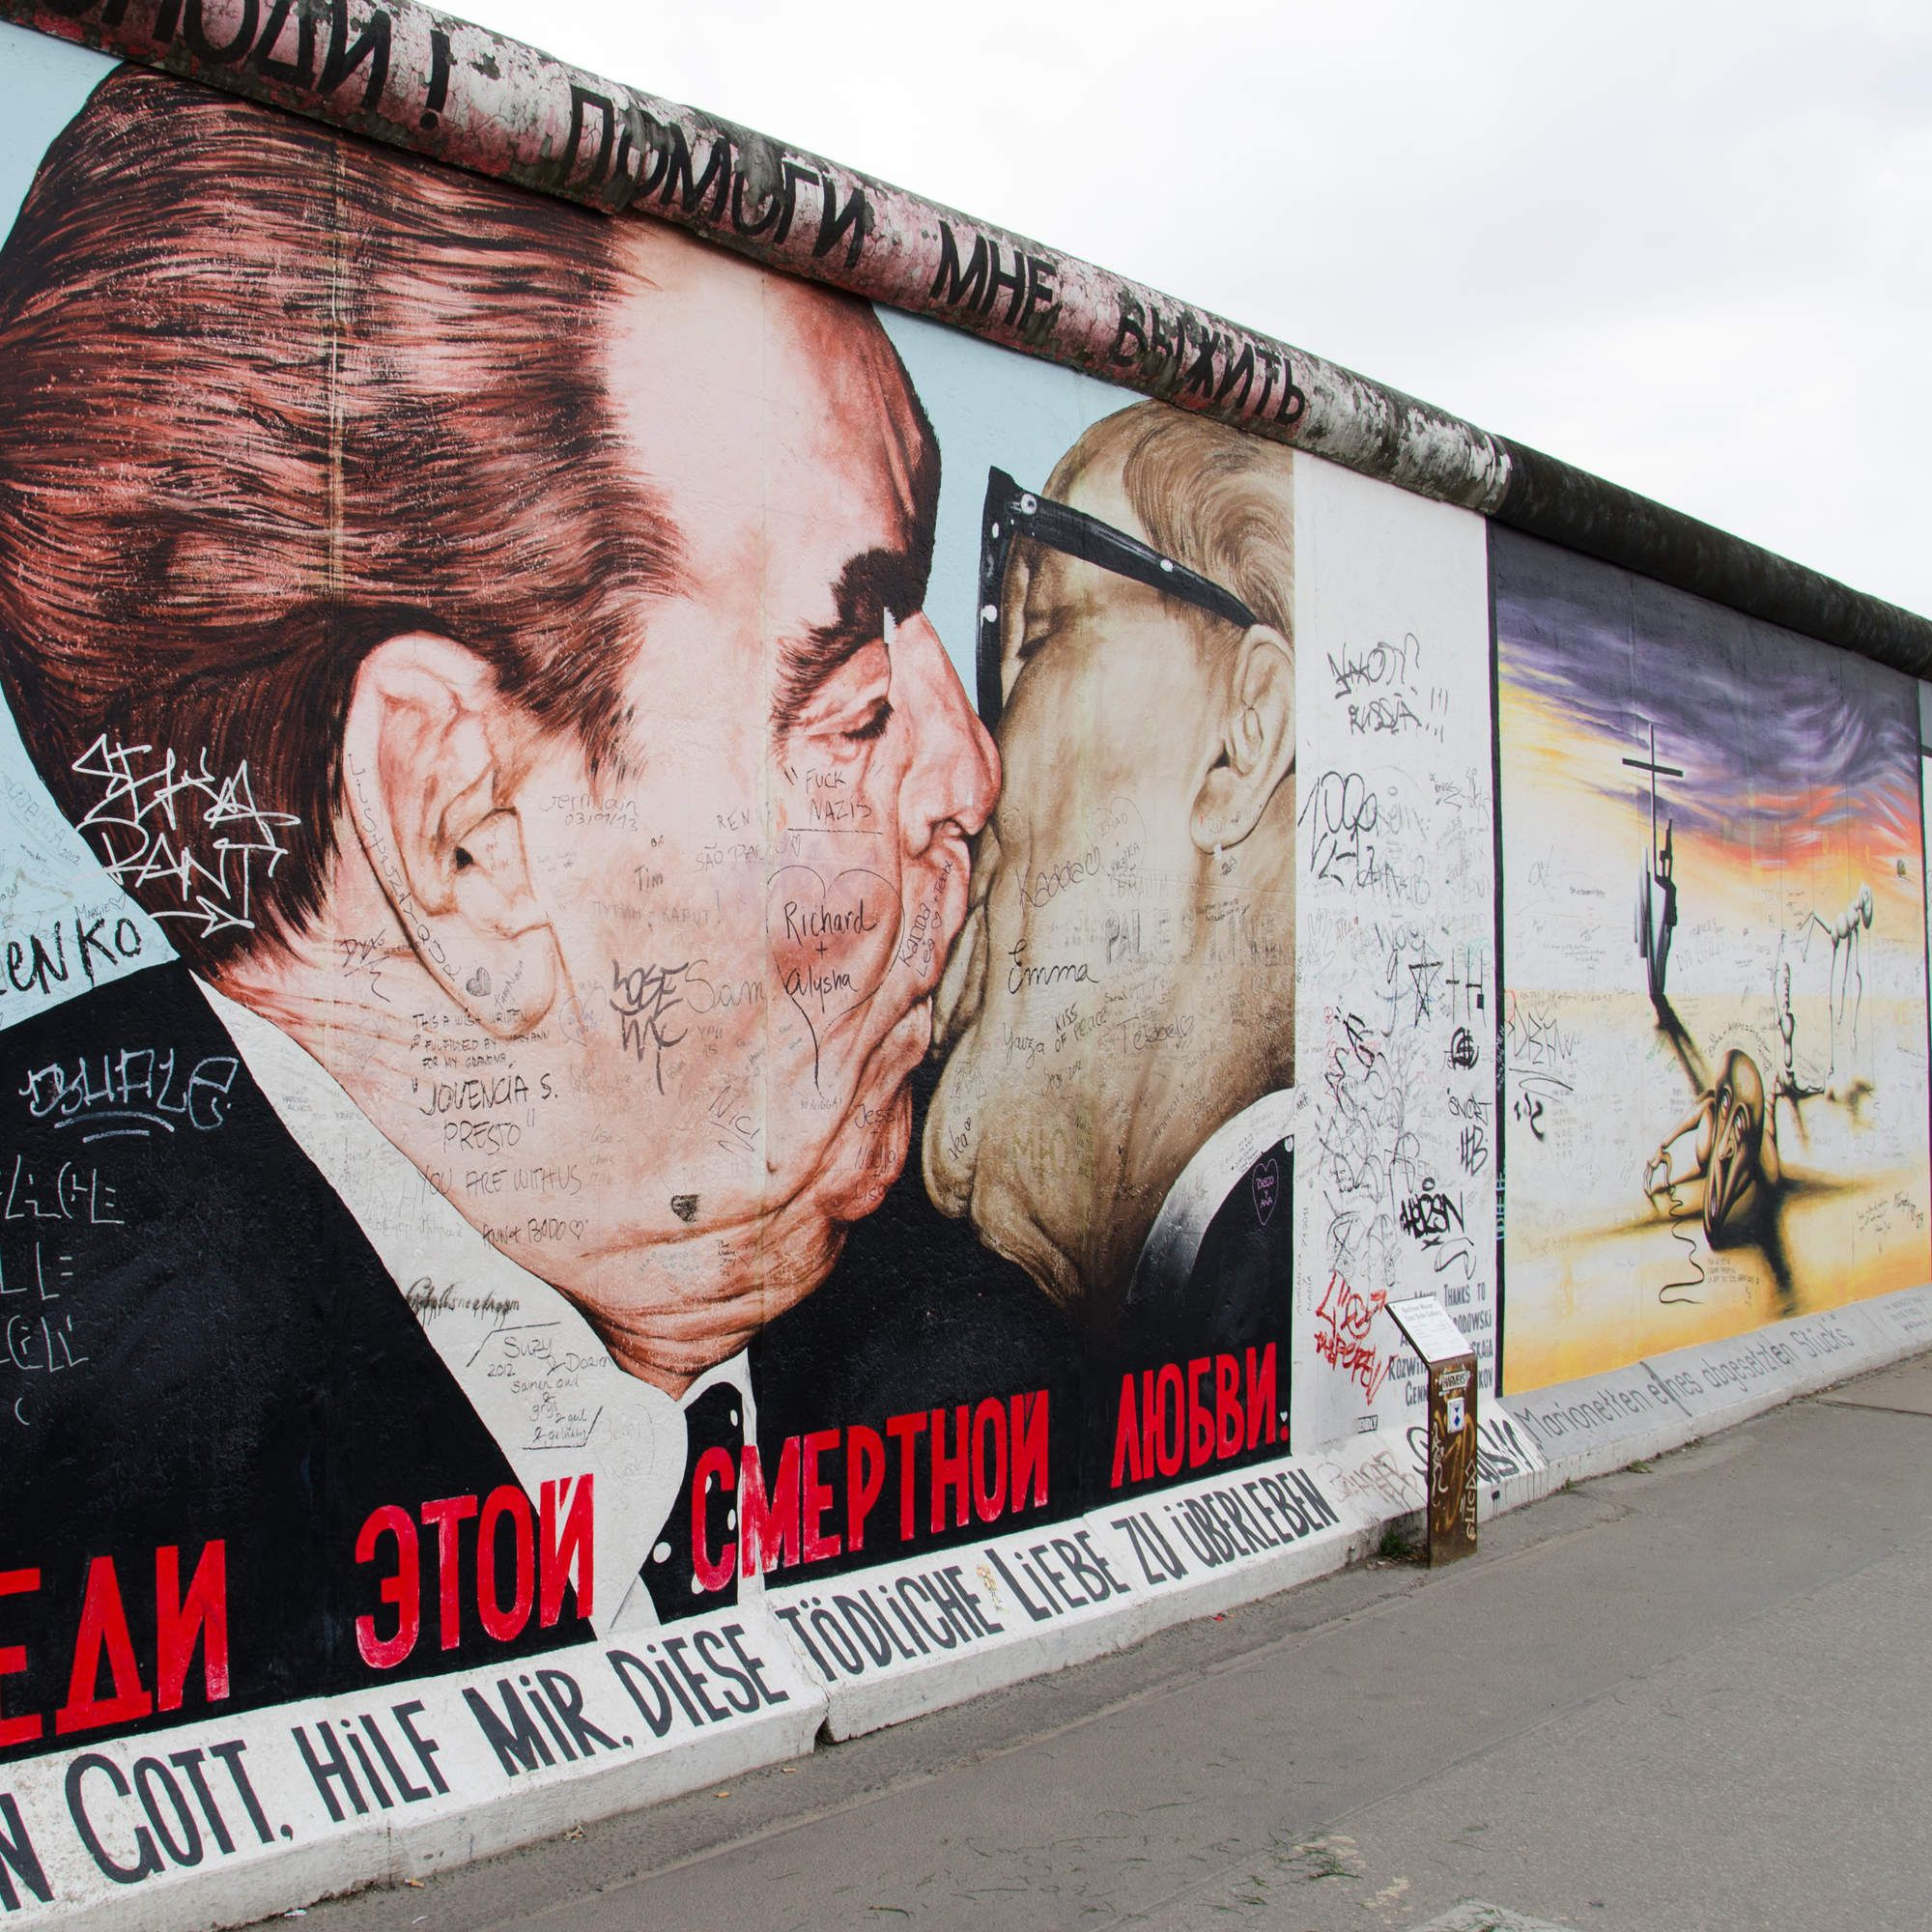 Europe S Coolest Street Art With Images East Side Gallery Street Art Berlin